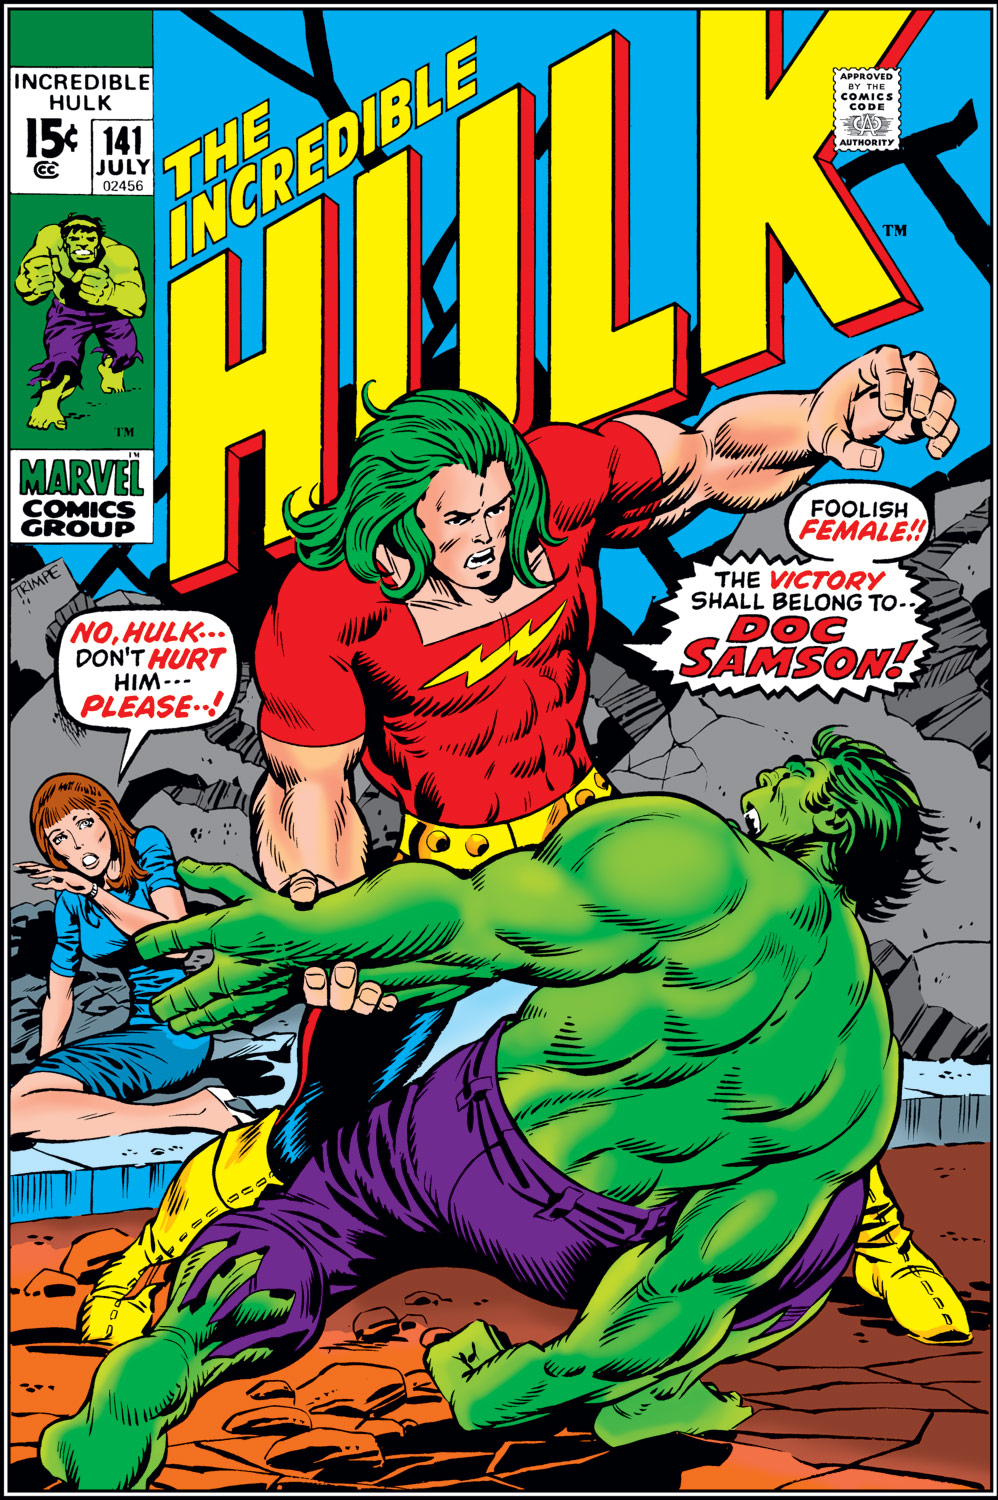 Incredible Hulk (1962) #141